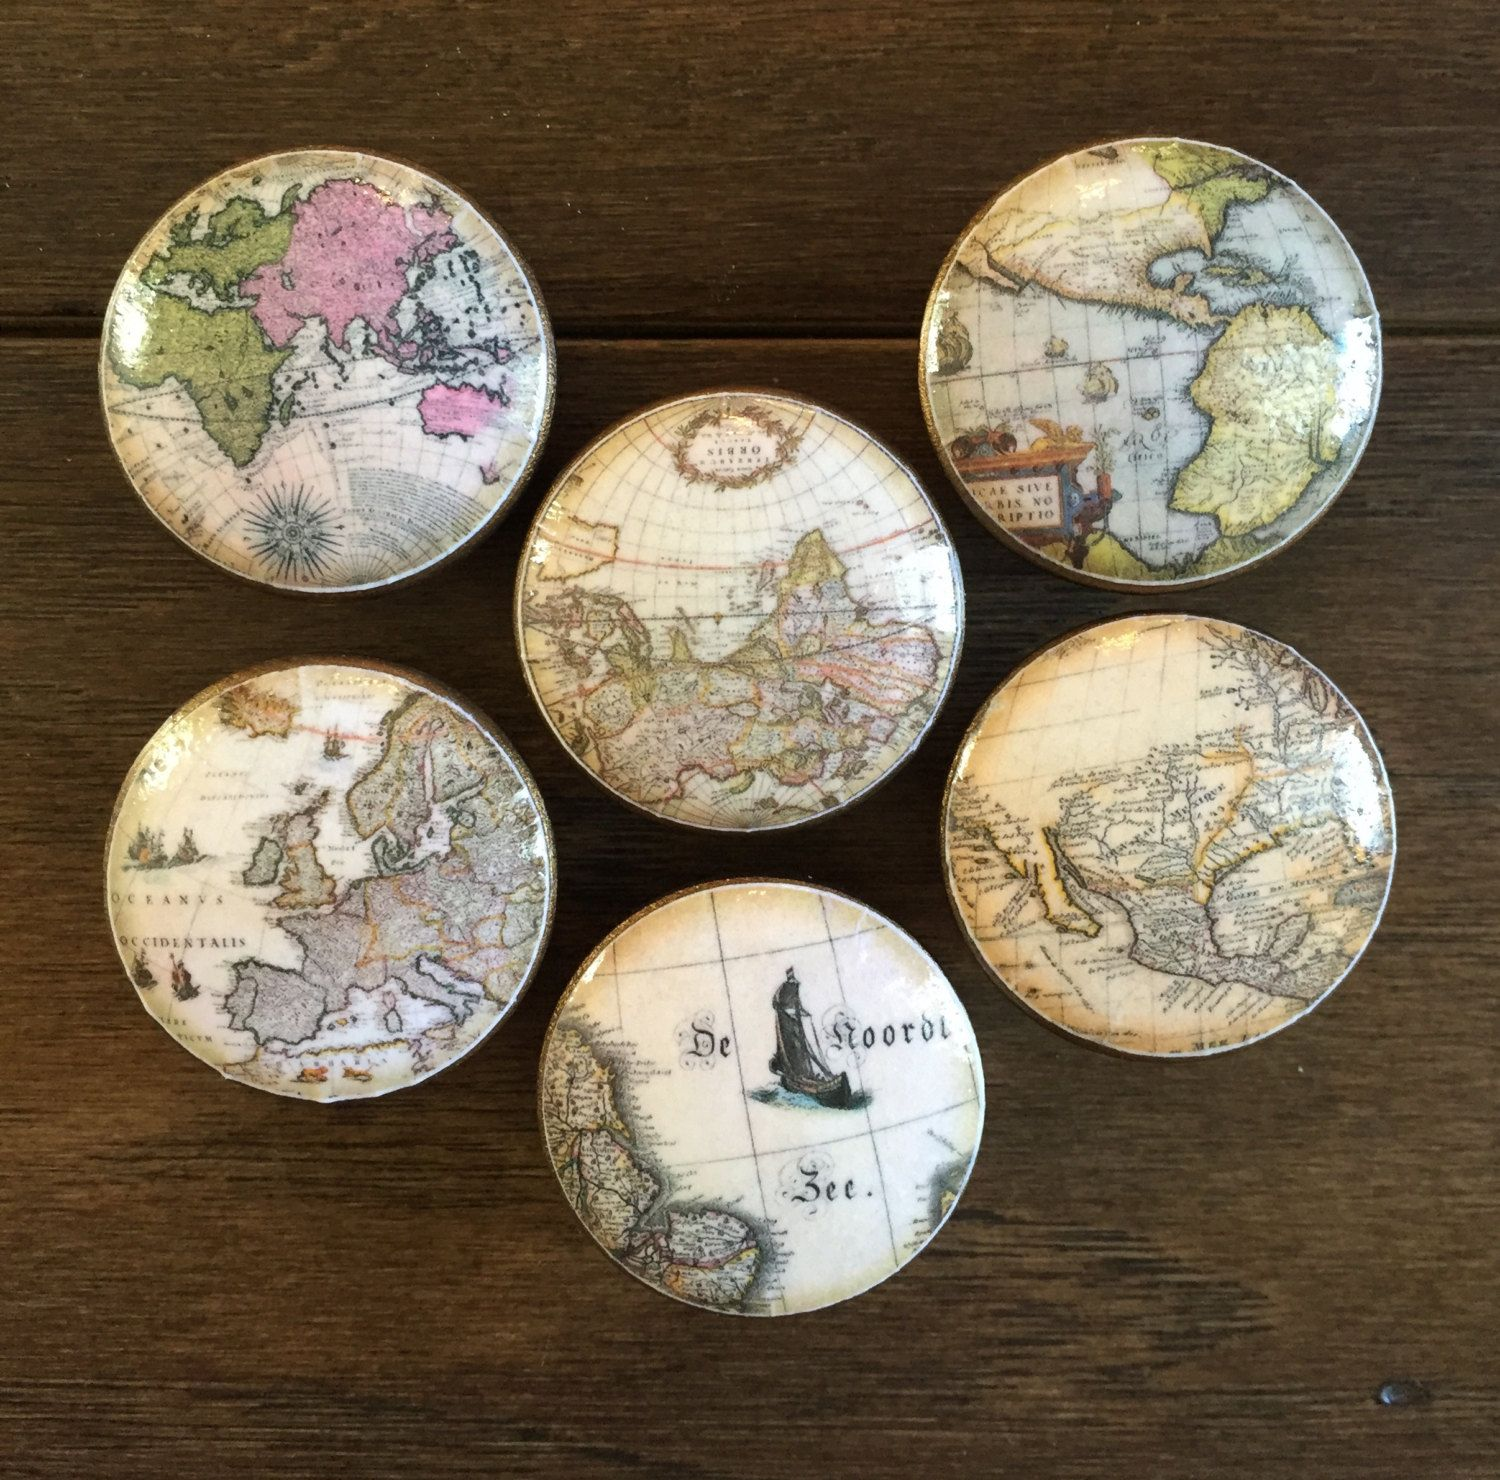 15 inch old world maps cabinet knobs drawer pulls brown antique 15 inch old world maps cabinet knobs drawer pulls brown antique look by holychicboutiqueco on etsy gumiabroncs Image collections